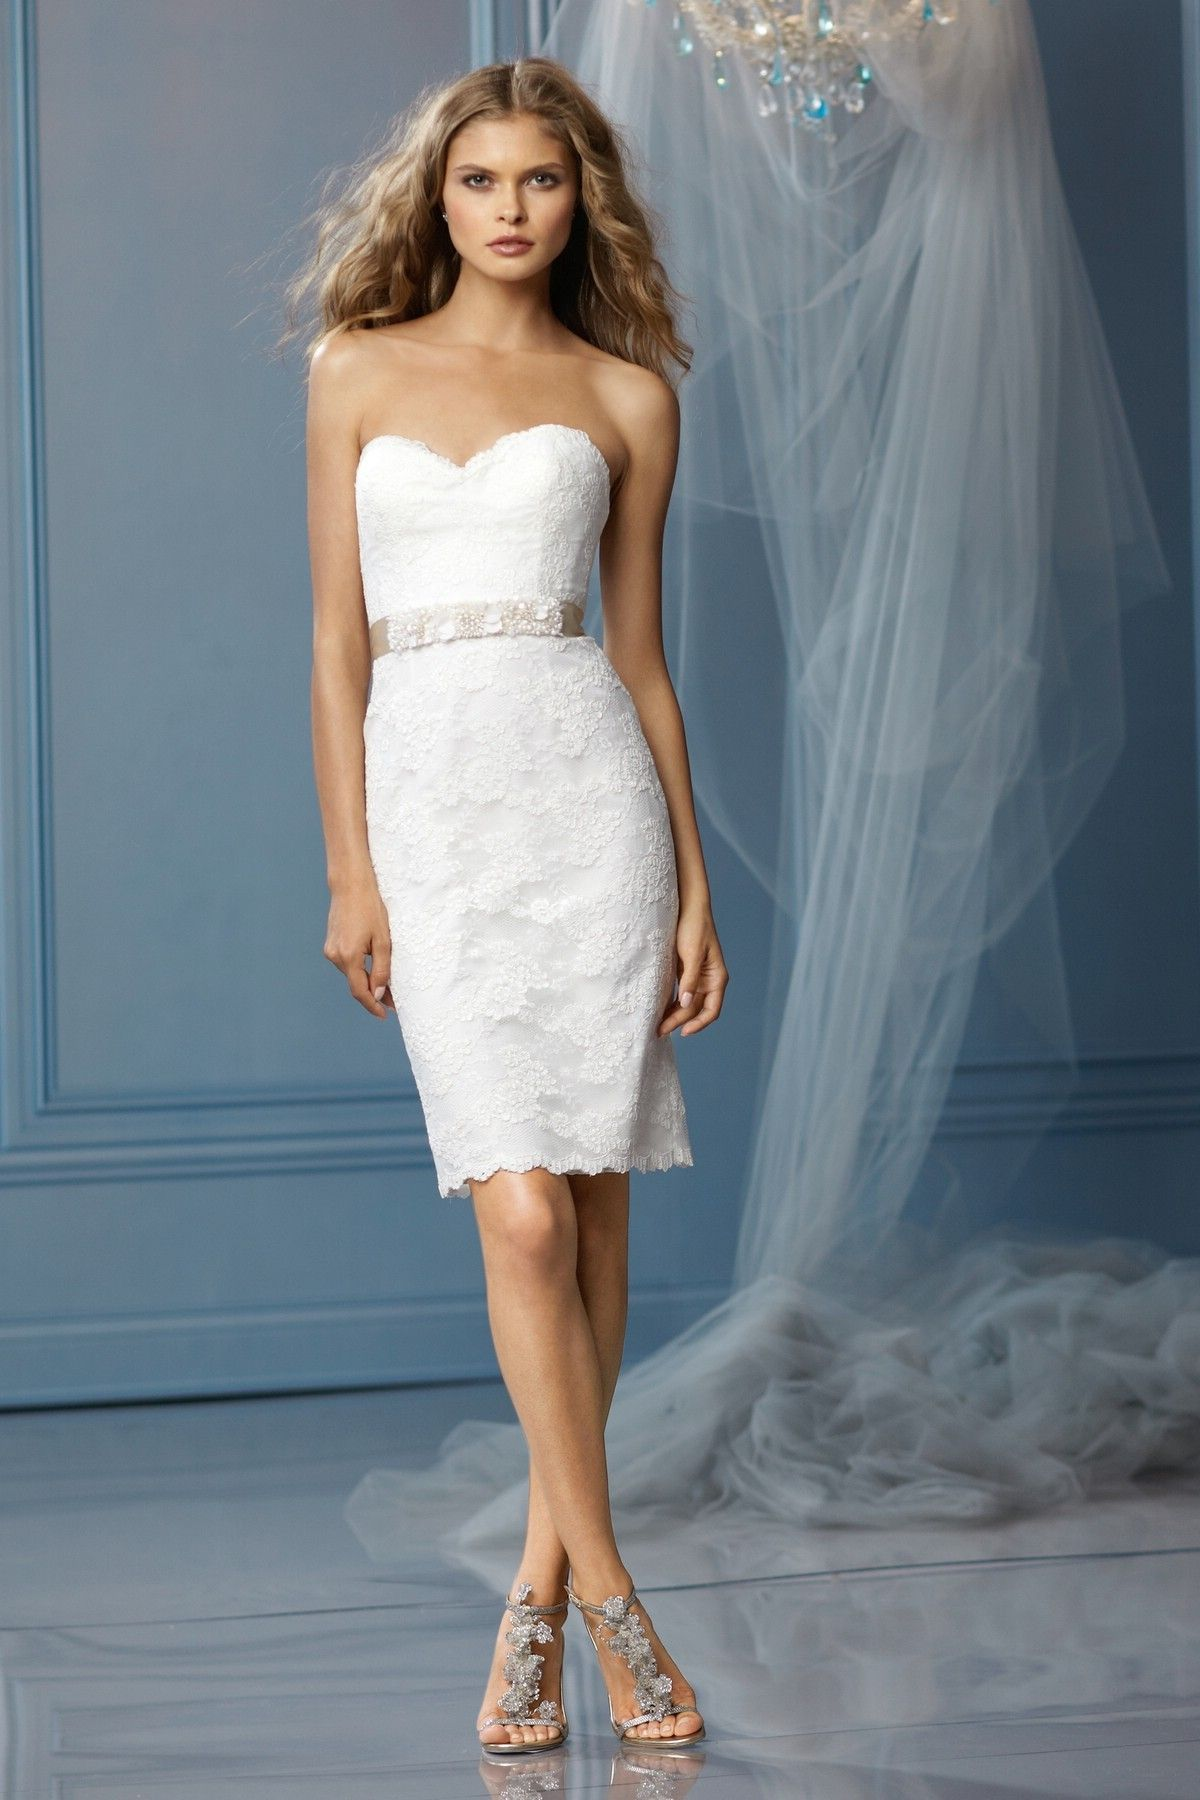 Strapless Sweetheart Neckline Short Length Lace Wedding Dress ...